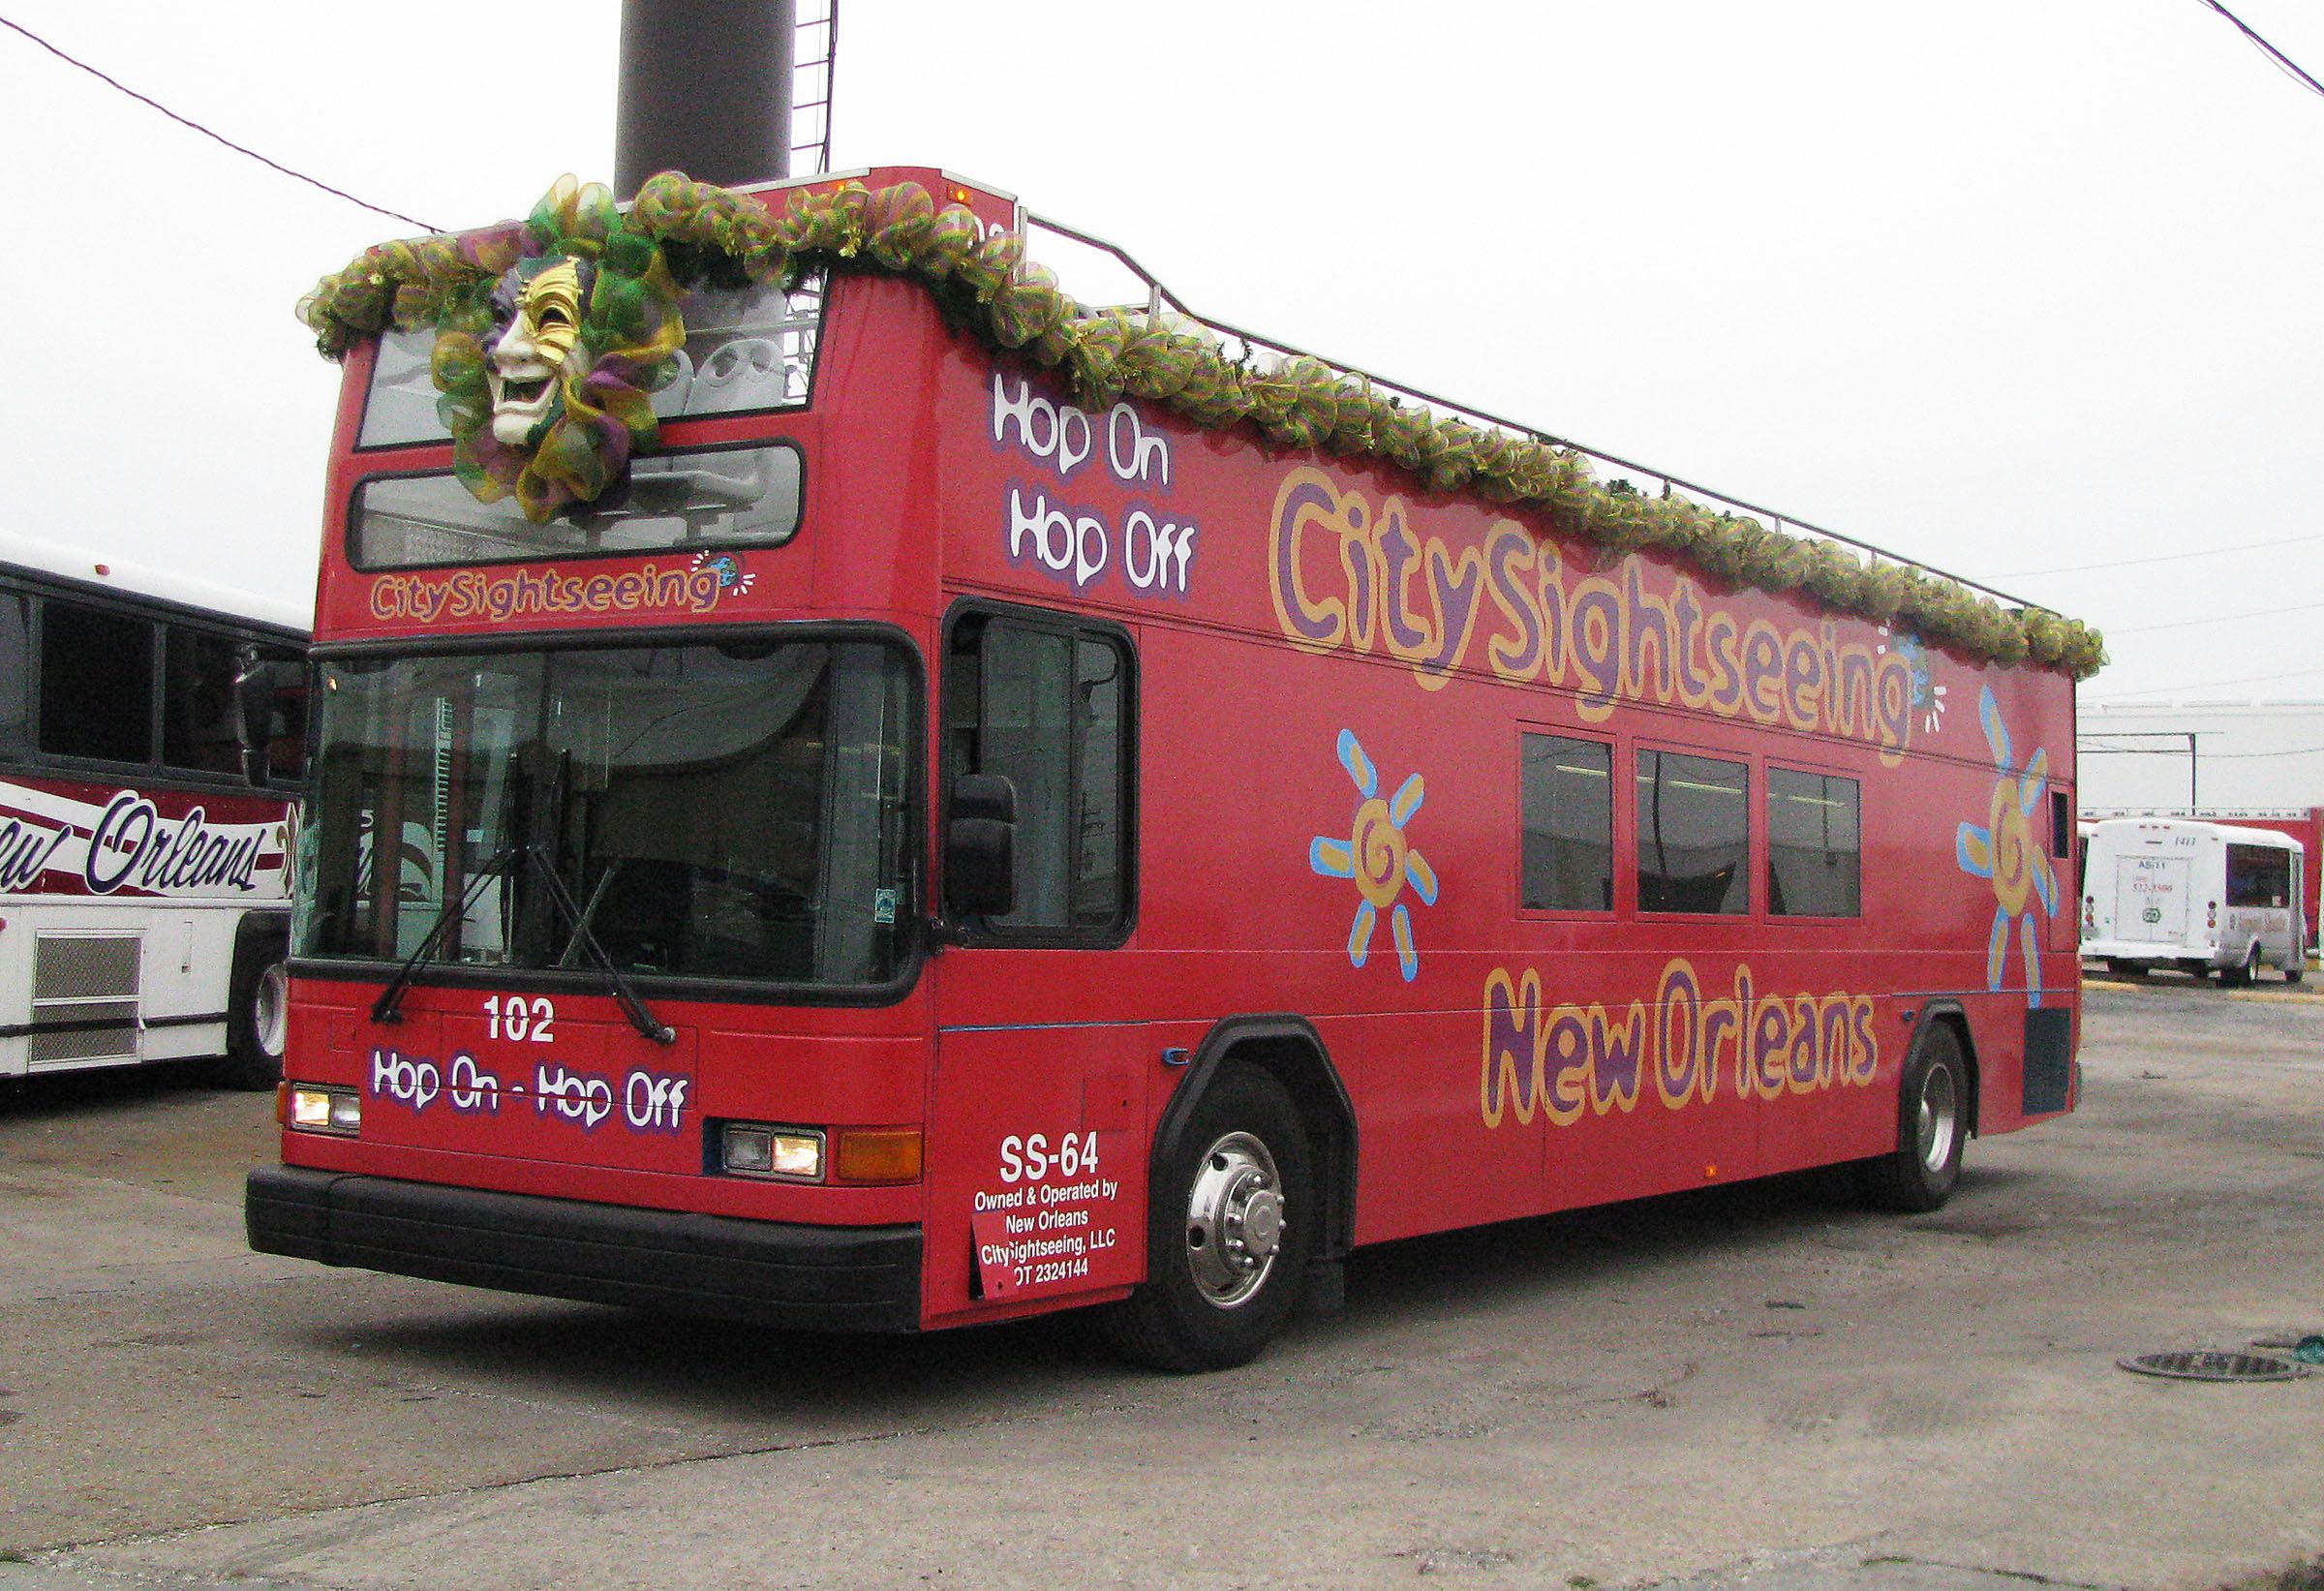 Hop On And Hop Off As You Wish On A City Sightseeing Tour Nola New Orleans Service Trip Tours New Orleans